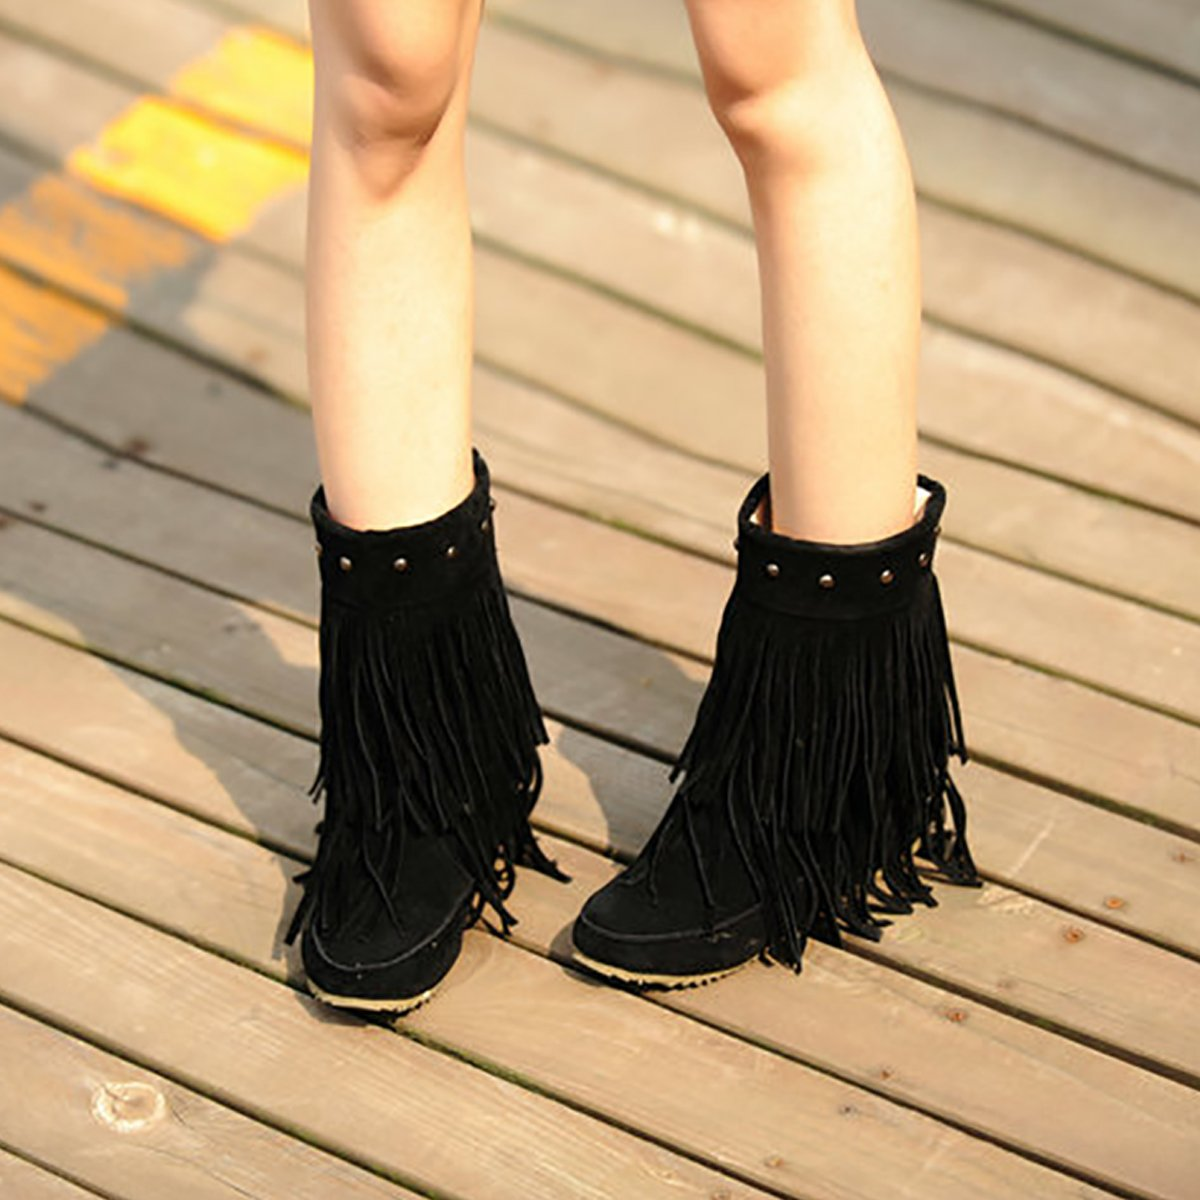 Inornever Suede Fringe Moccasin Boots Mid Calf Women's Round Toe Flat Heel Ladies Winter Fashion Snow Booties